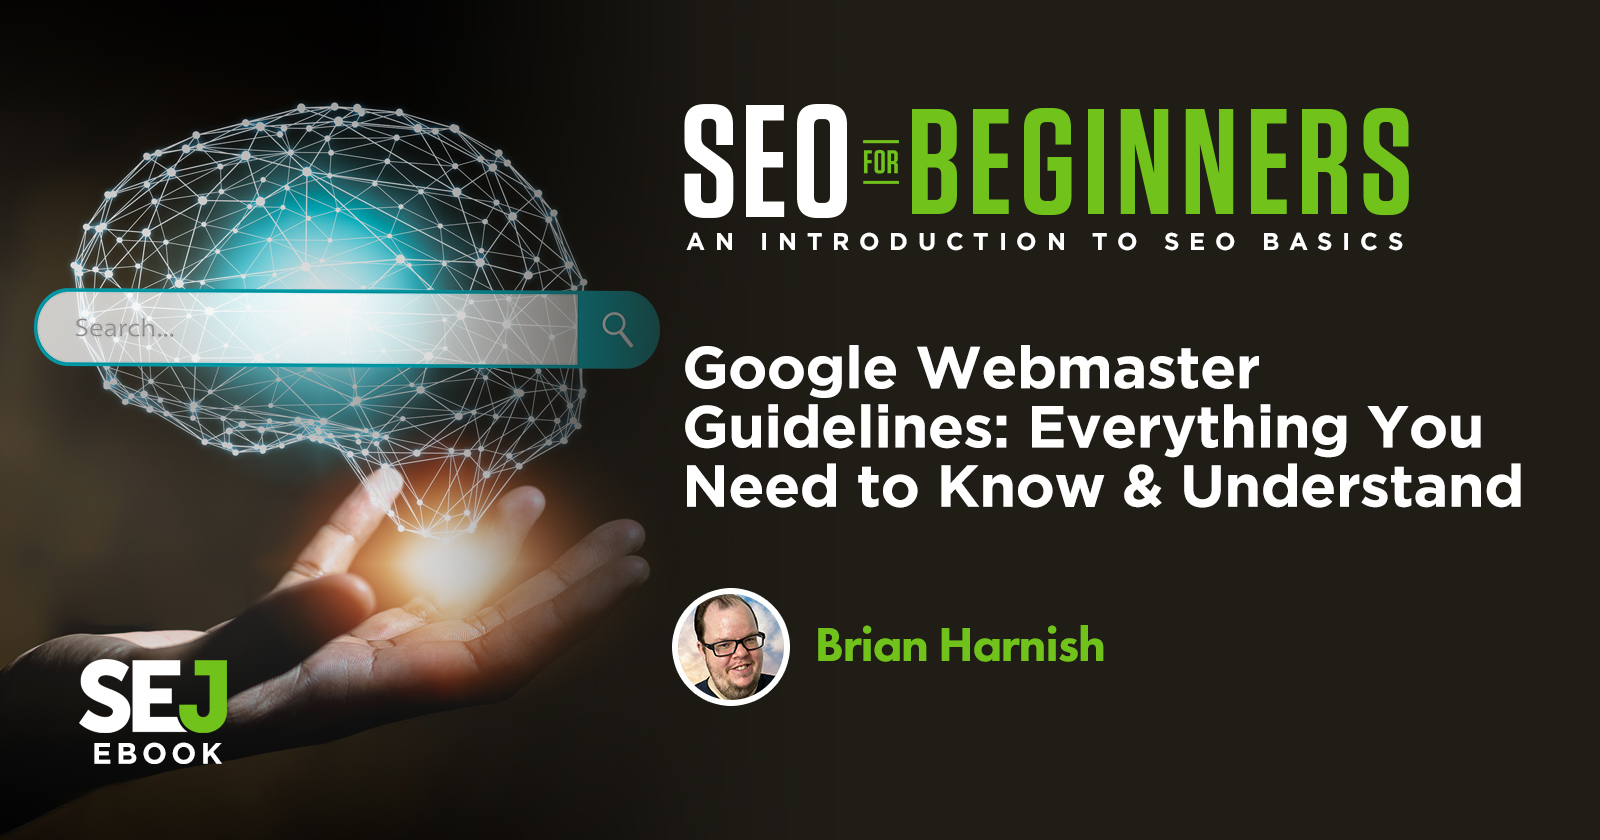 Google Webmaster Guidelines: Everything You Need to Know & Understand - Search Engine Journal